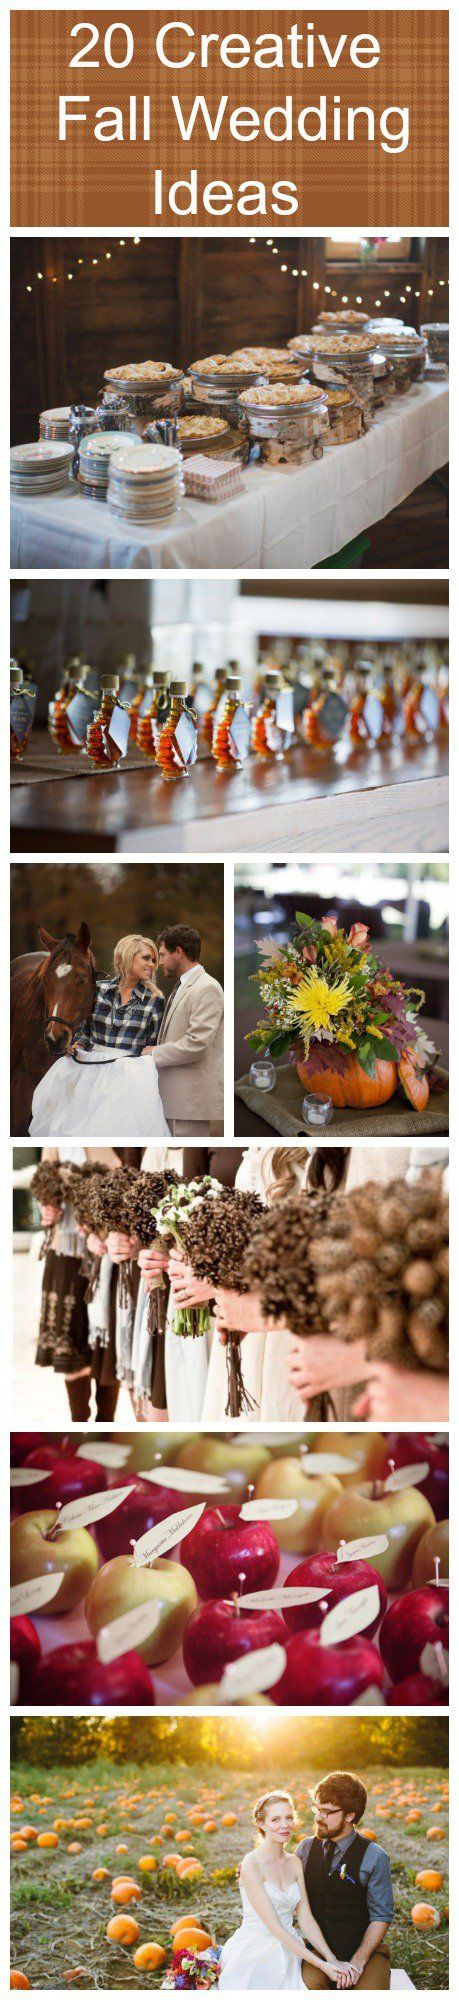 top jewelry stores 20 Creative Fall Wedding Ideas   Fall Wedding  Wedding Ideas and Creative